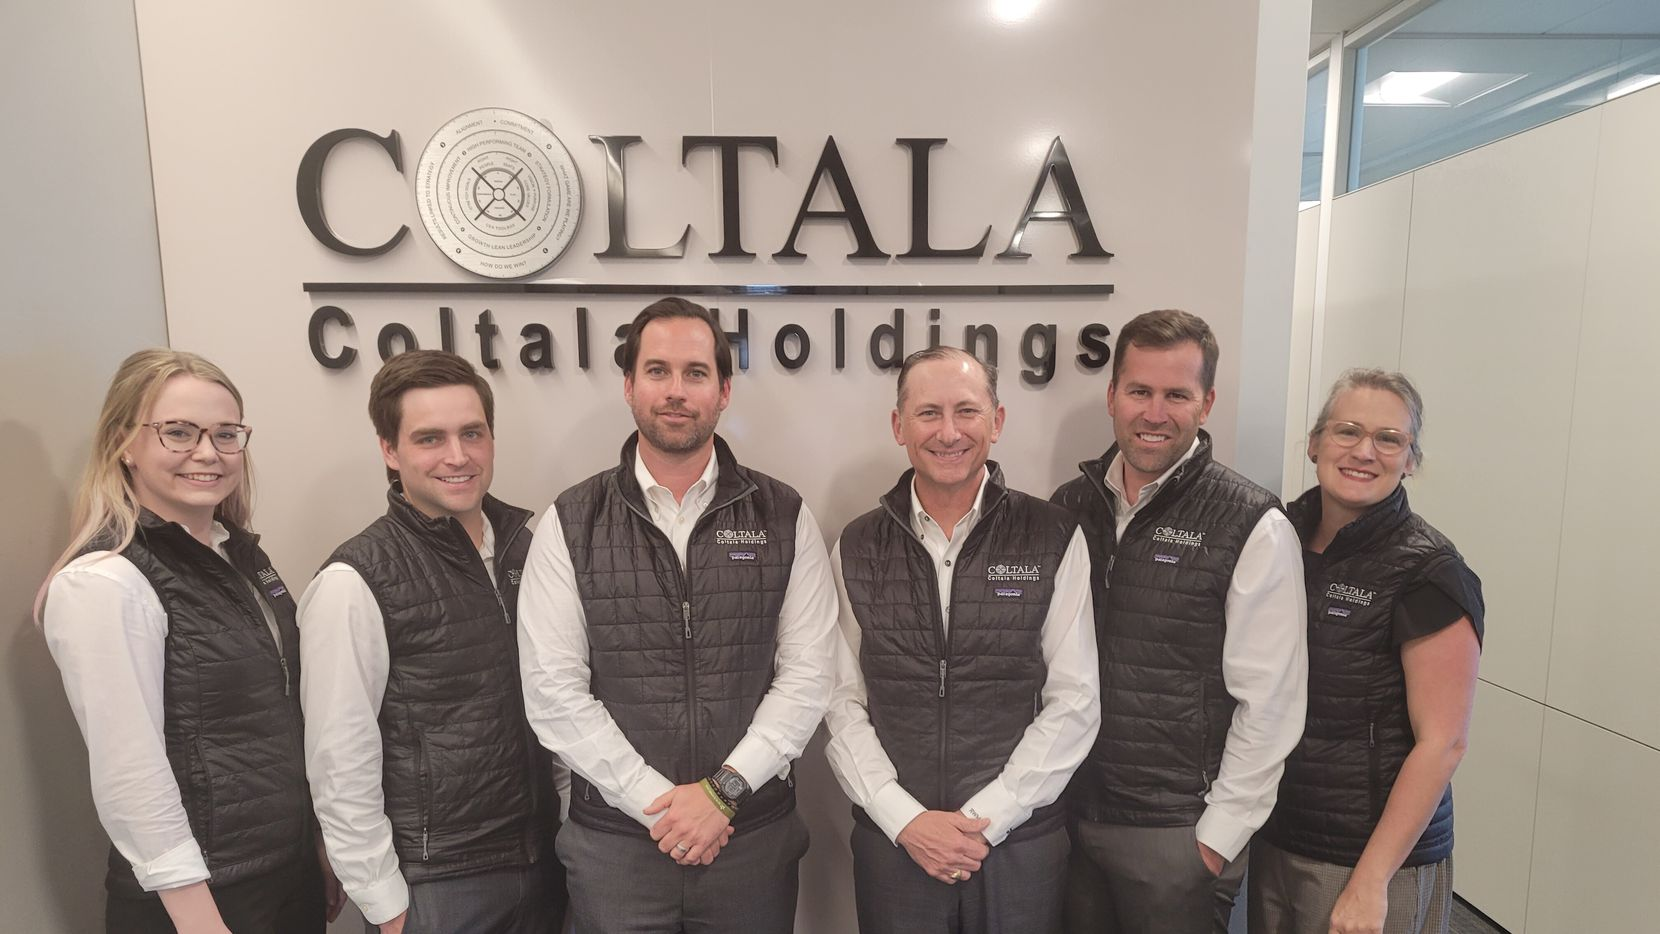 The Coltala Holdings team (from left) includes Sara White, Blaine Kaehr, co-founder and president Edward Crawford, co-founder and CEO Ralph Manning, Nathan Wilson and Melanie Barton.